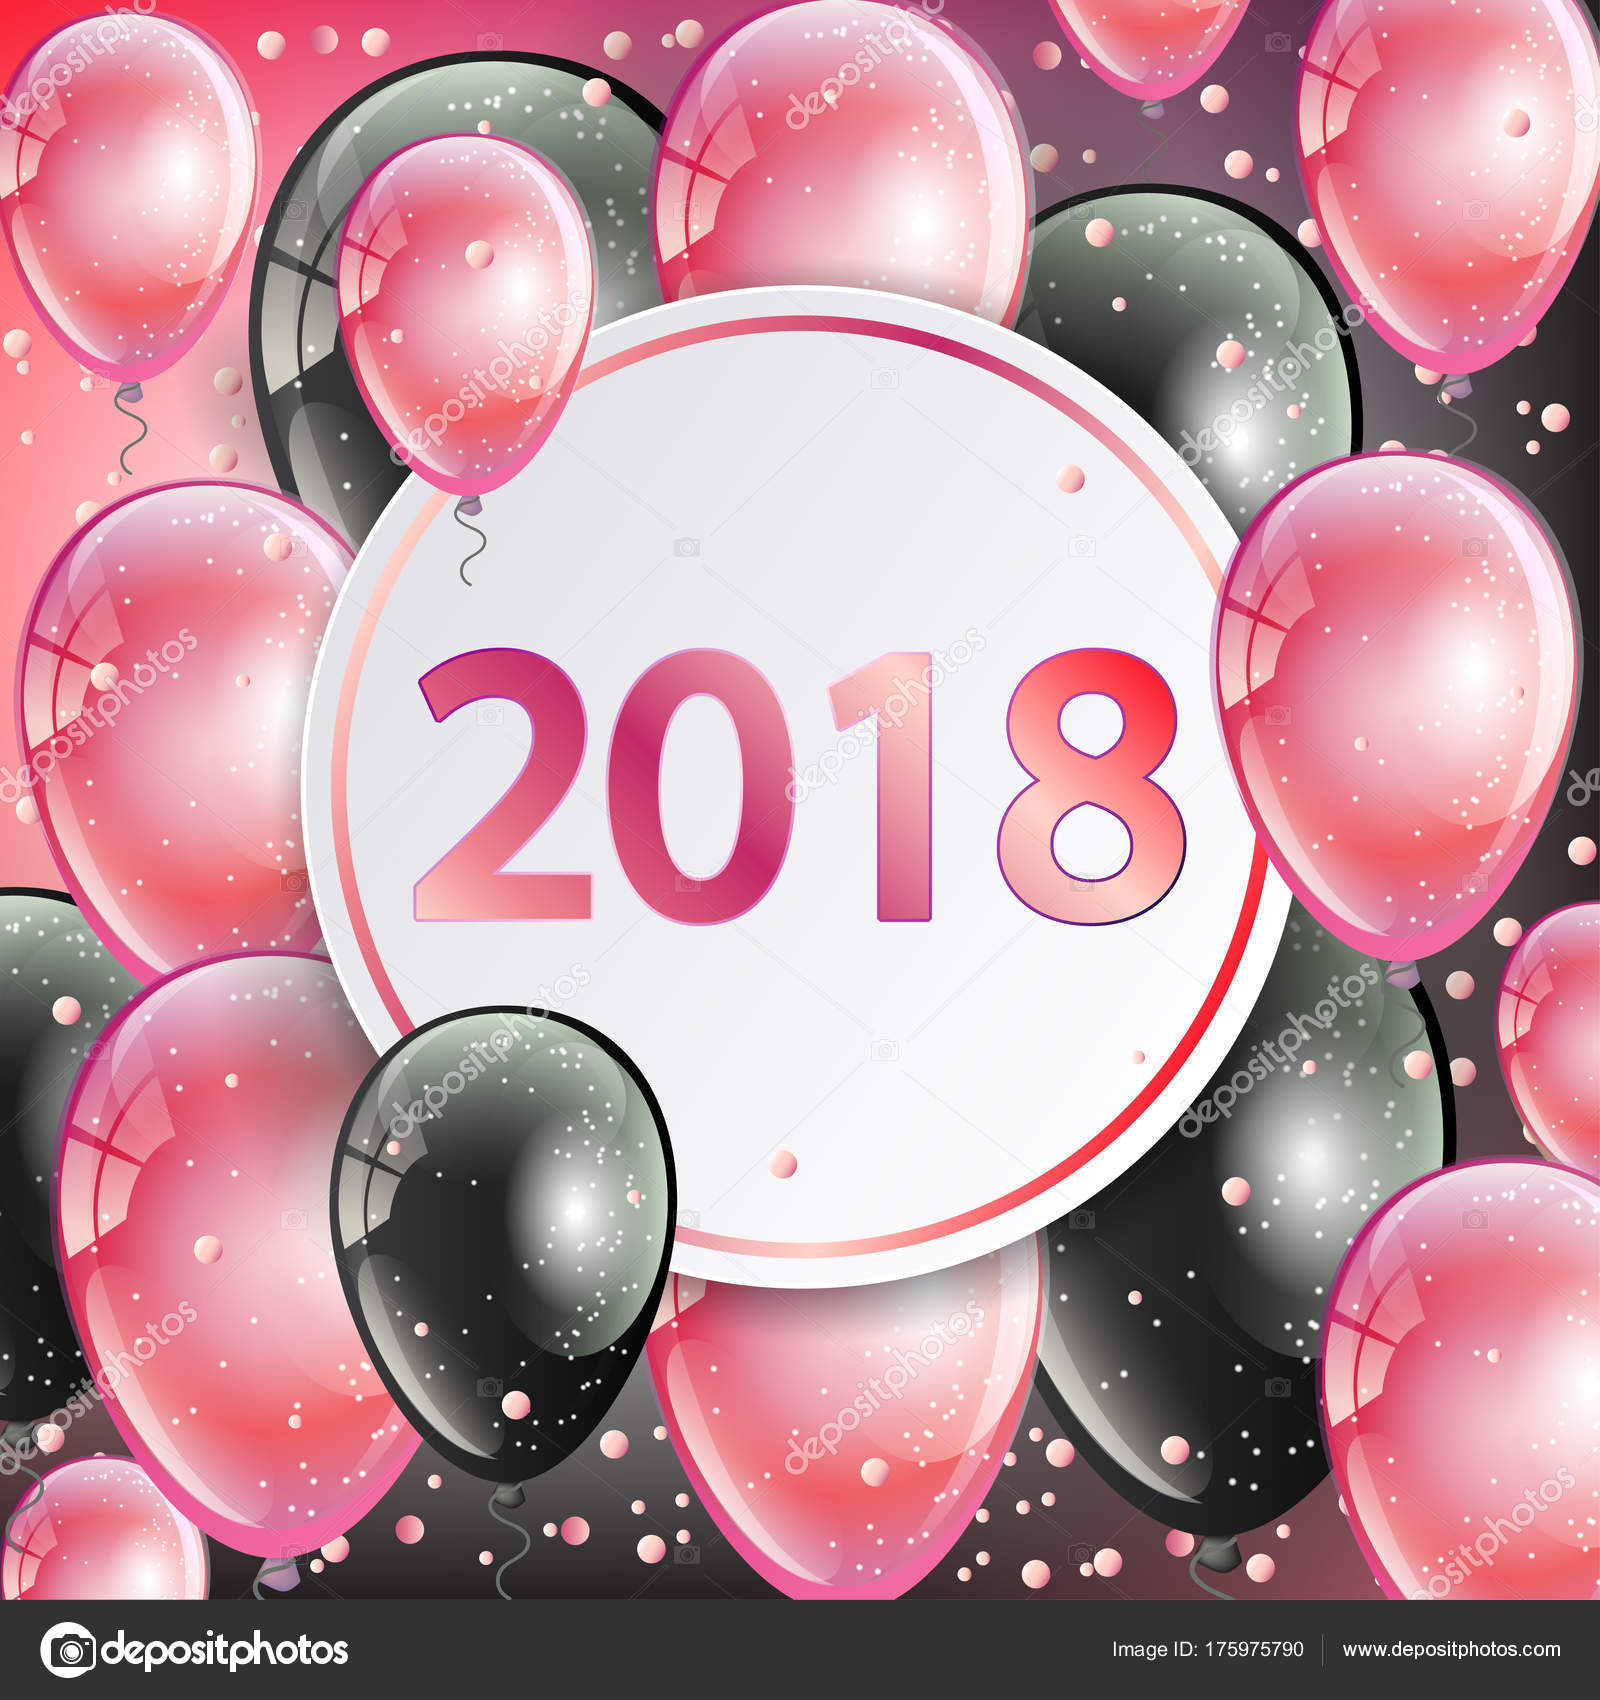 happy new year 2018 greeting card with pink and black balloons stock vector